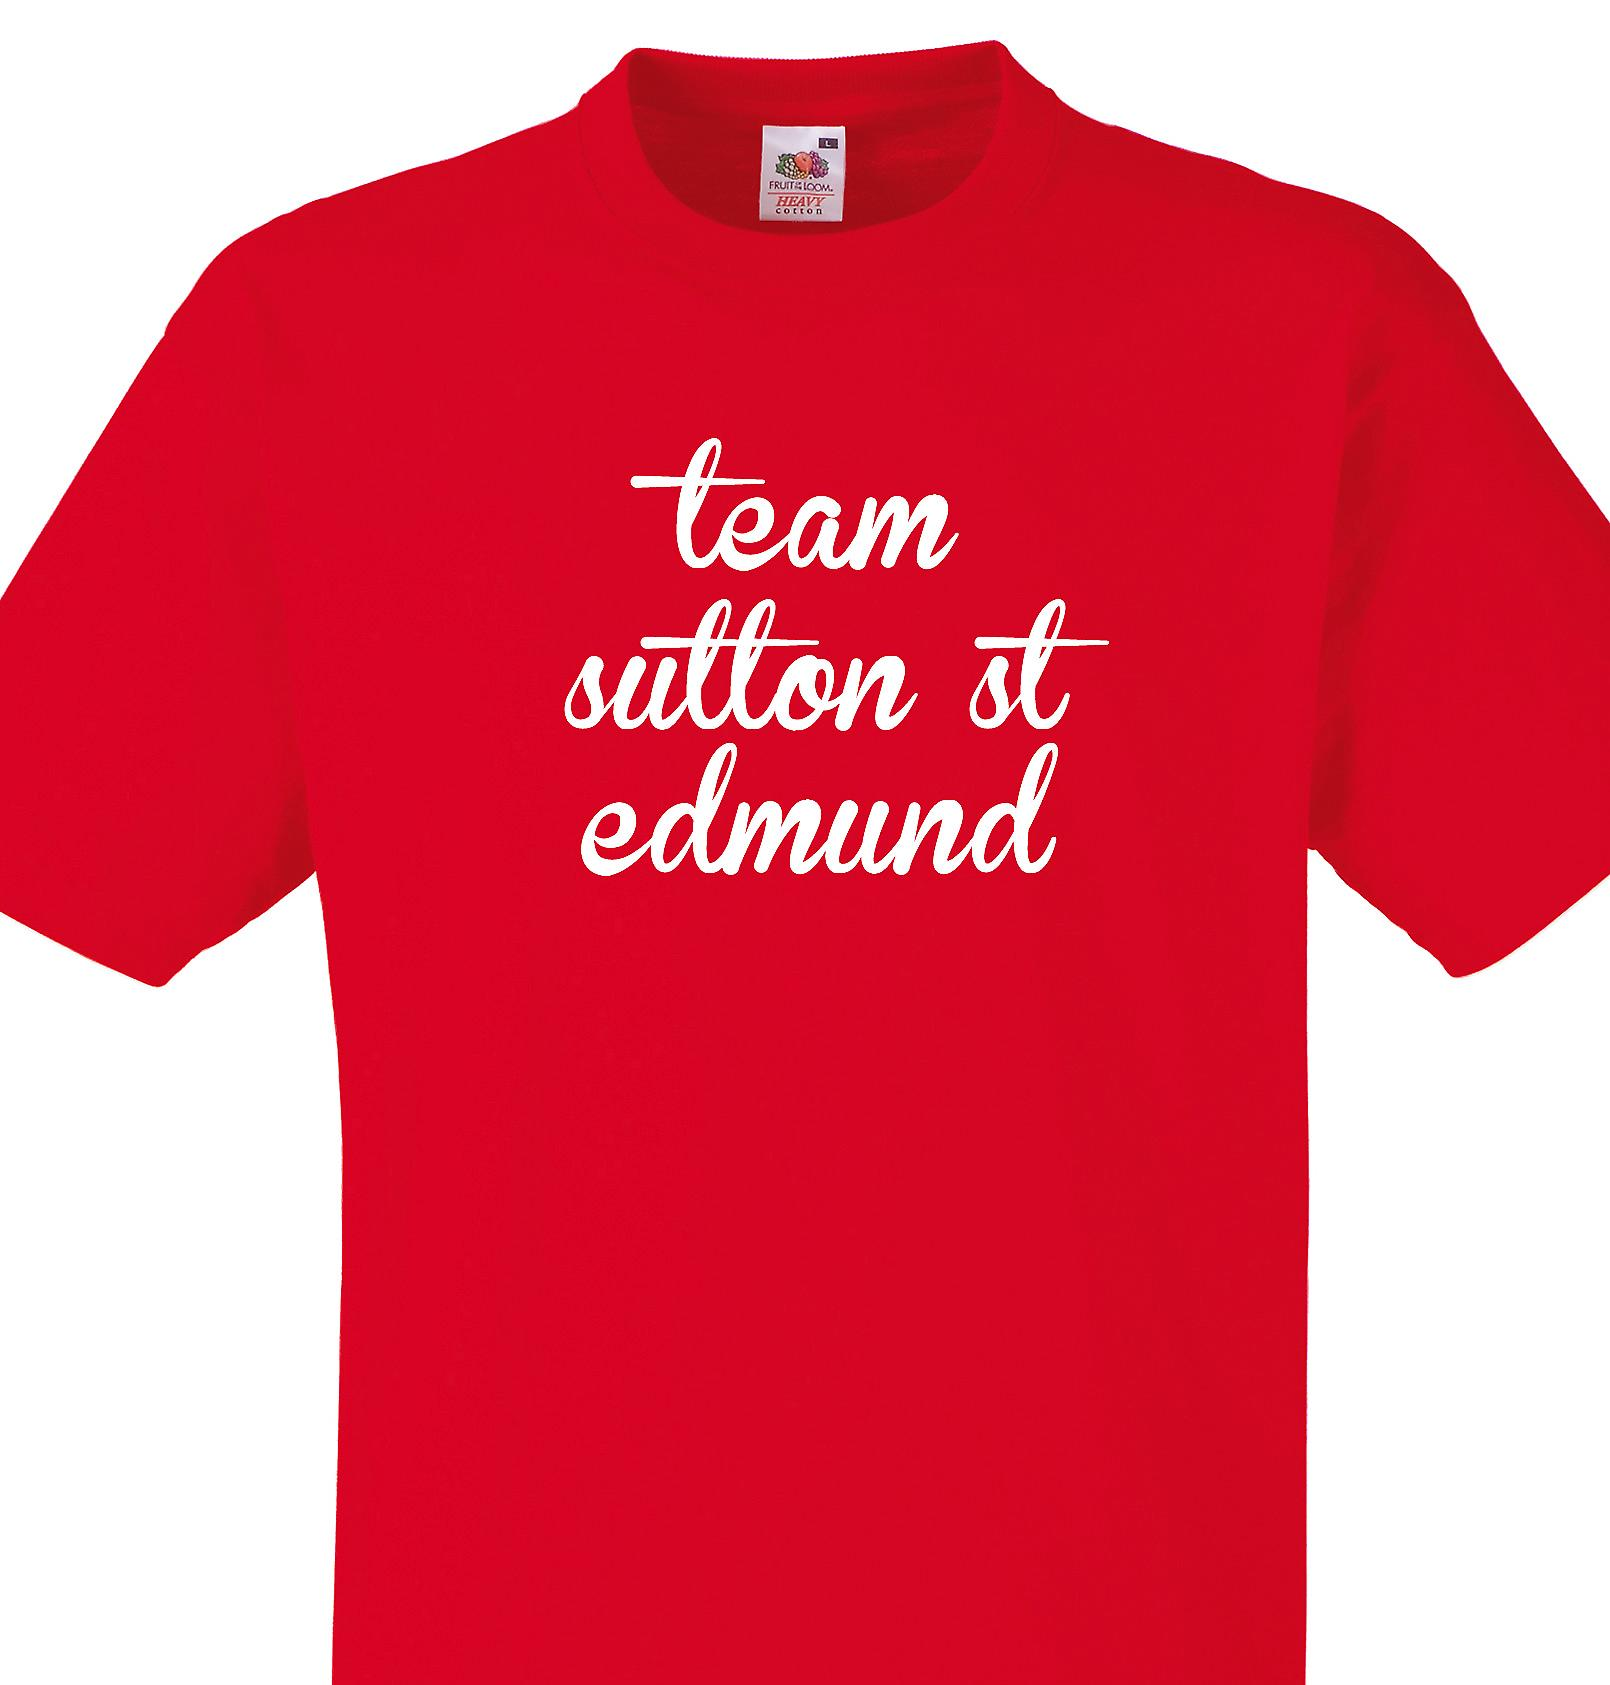 Team Sutton st edmund Red T shirt